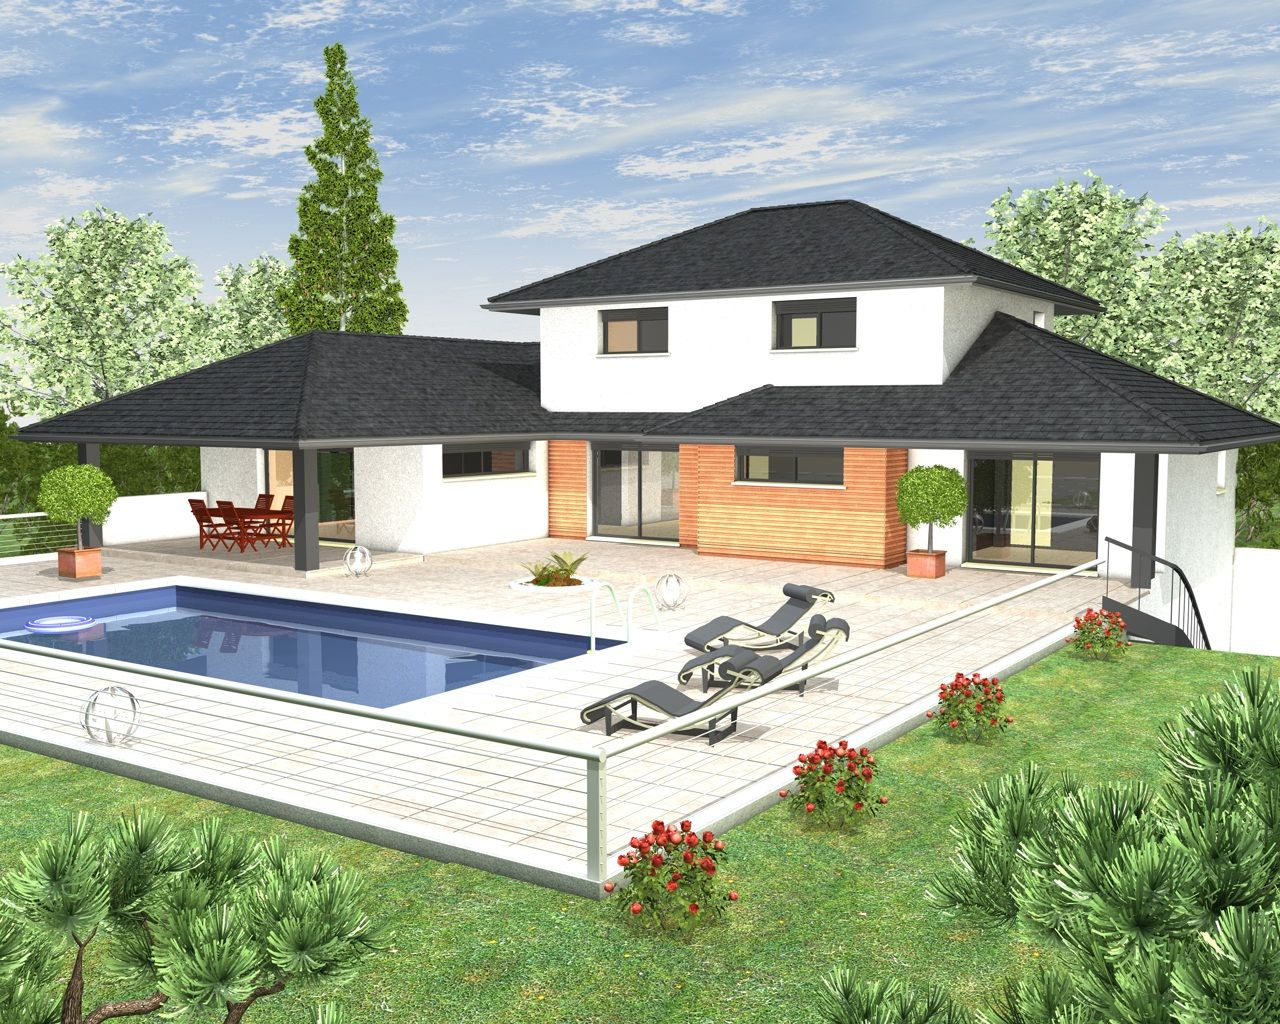 Mod les et plans de maisons mod le tage inspiration for Model de construction maison